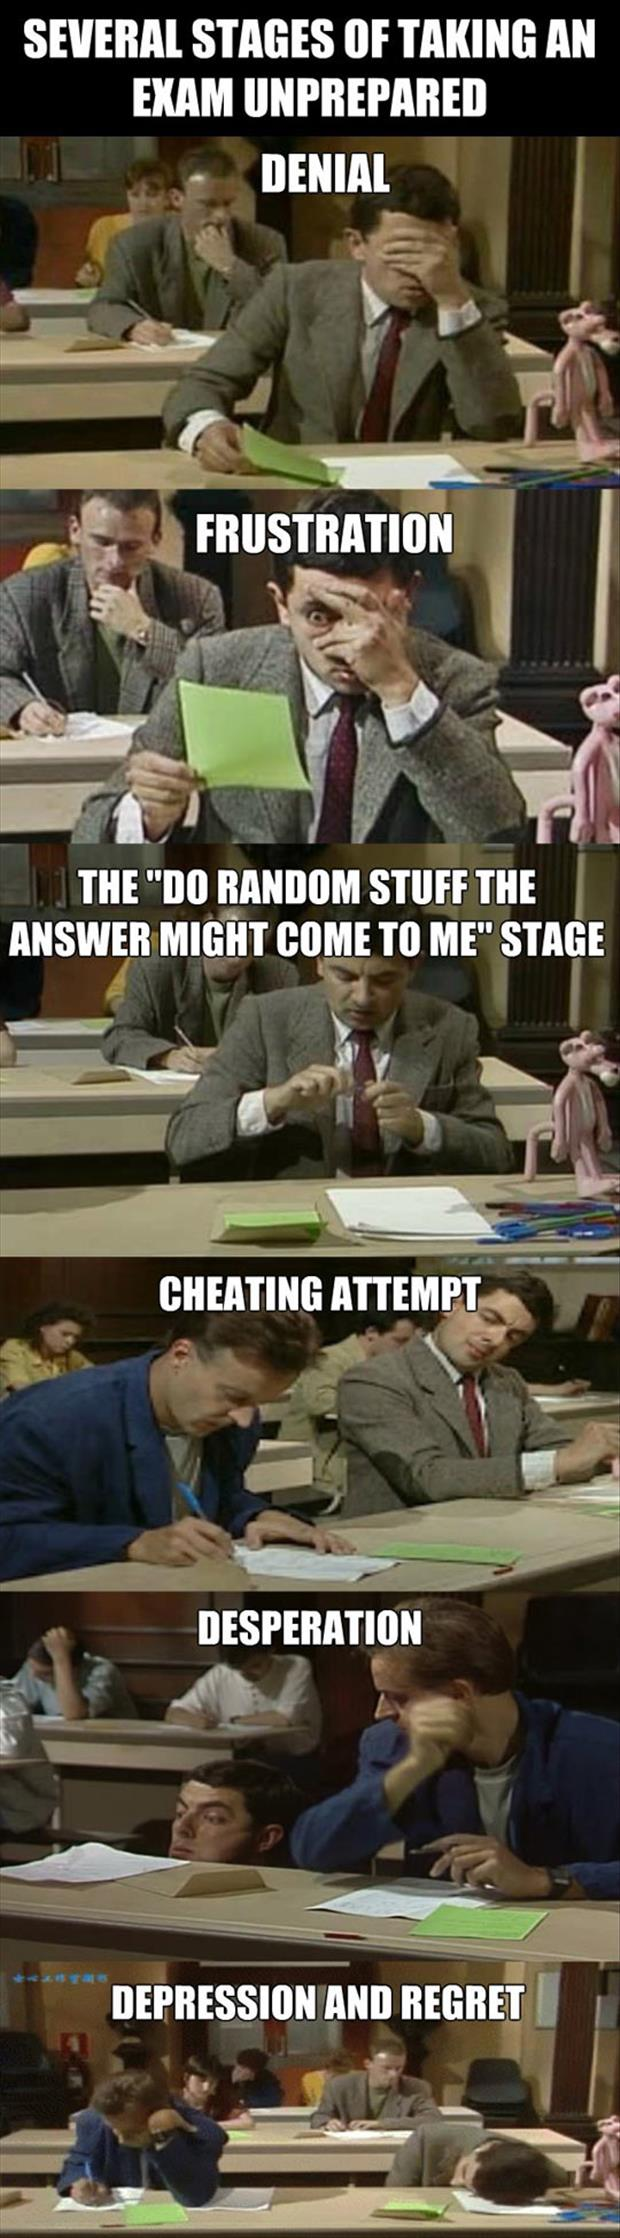 stages of taking an exam